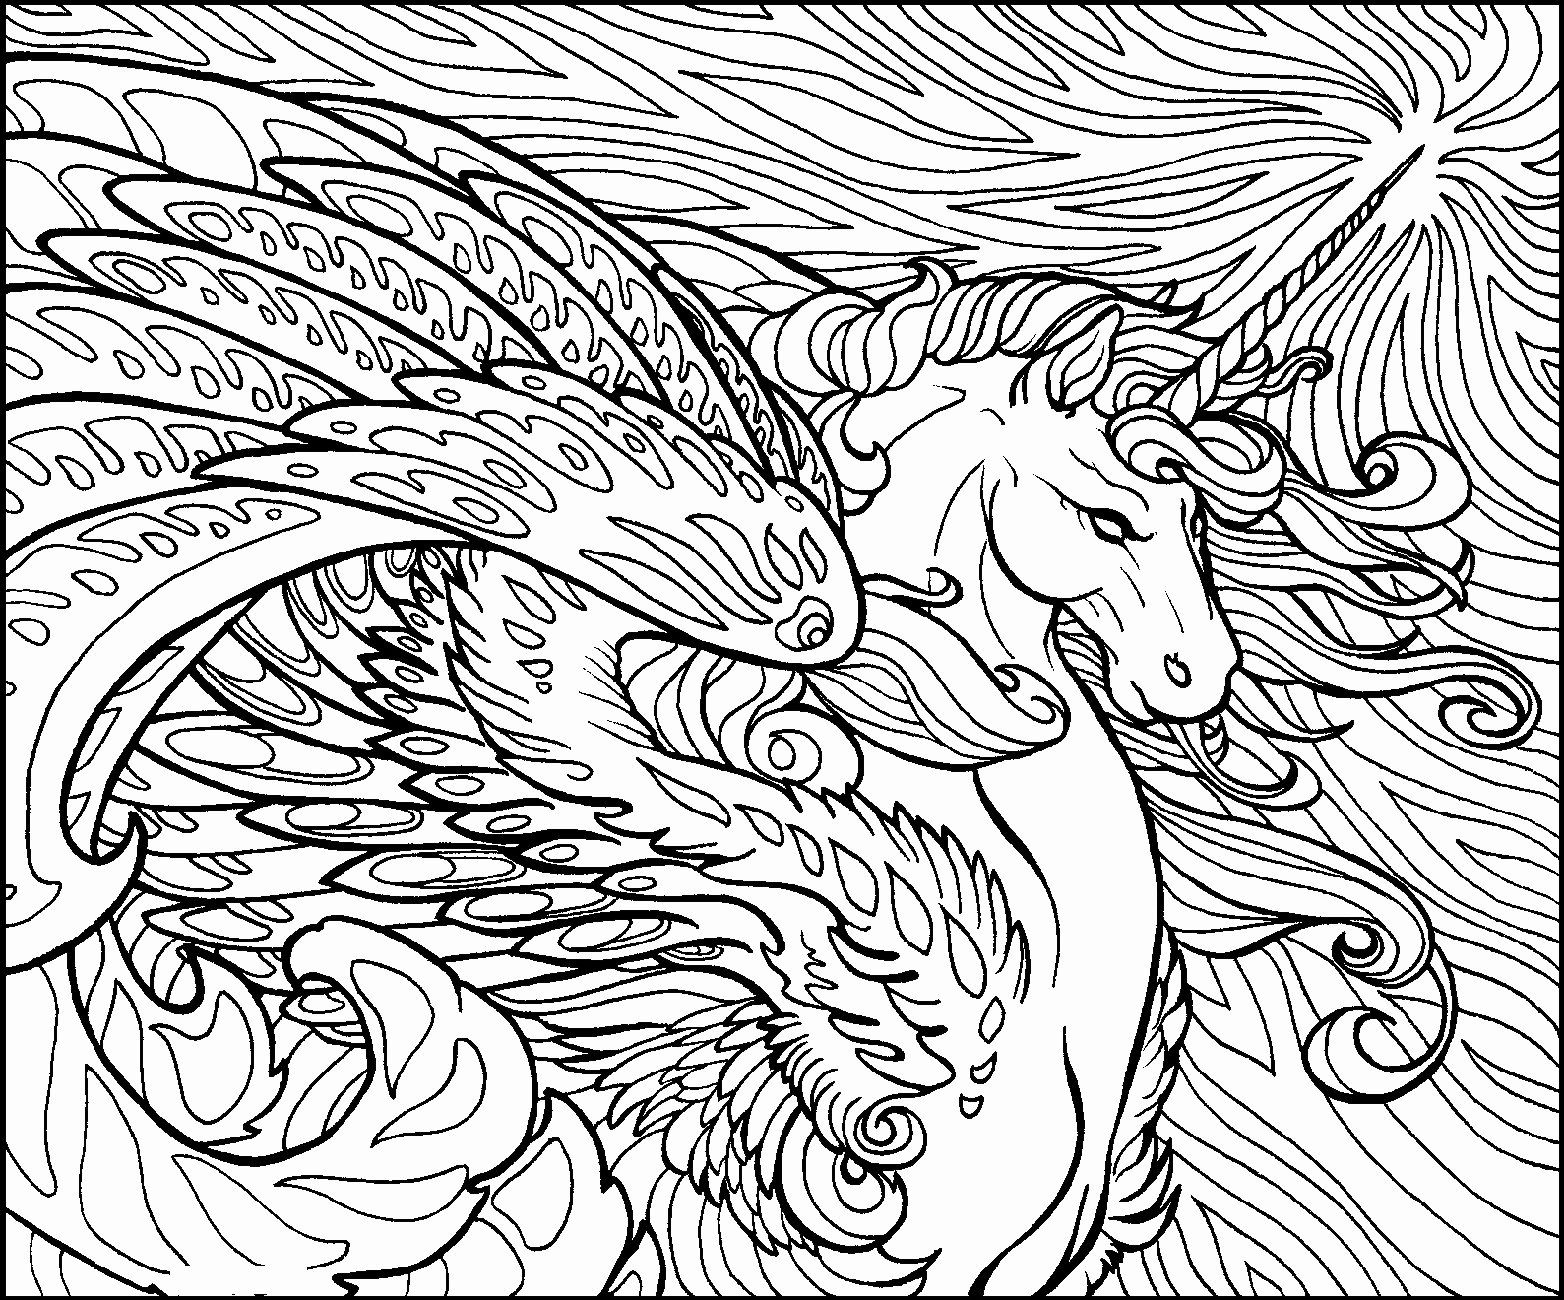 Hard Coloring Pages Pdf Elegant Coloring Design Hard Coloring Pages For Adults Best Kids Detailed Coloring Pages Dragon Coloring Page Geometric Coloring Pages